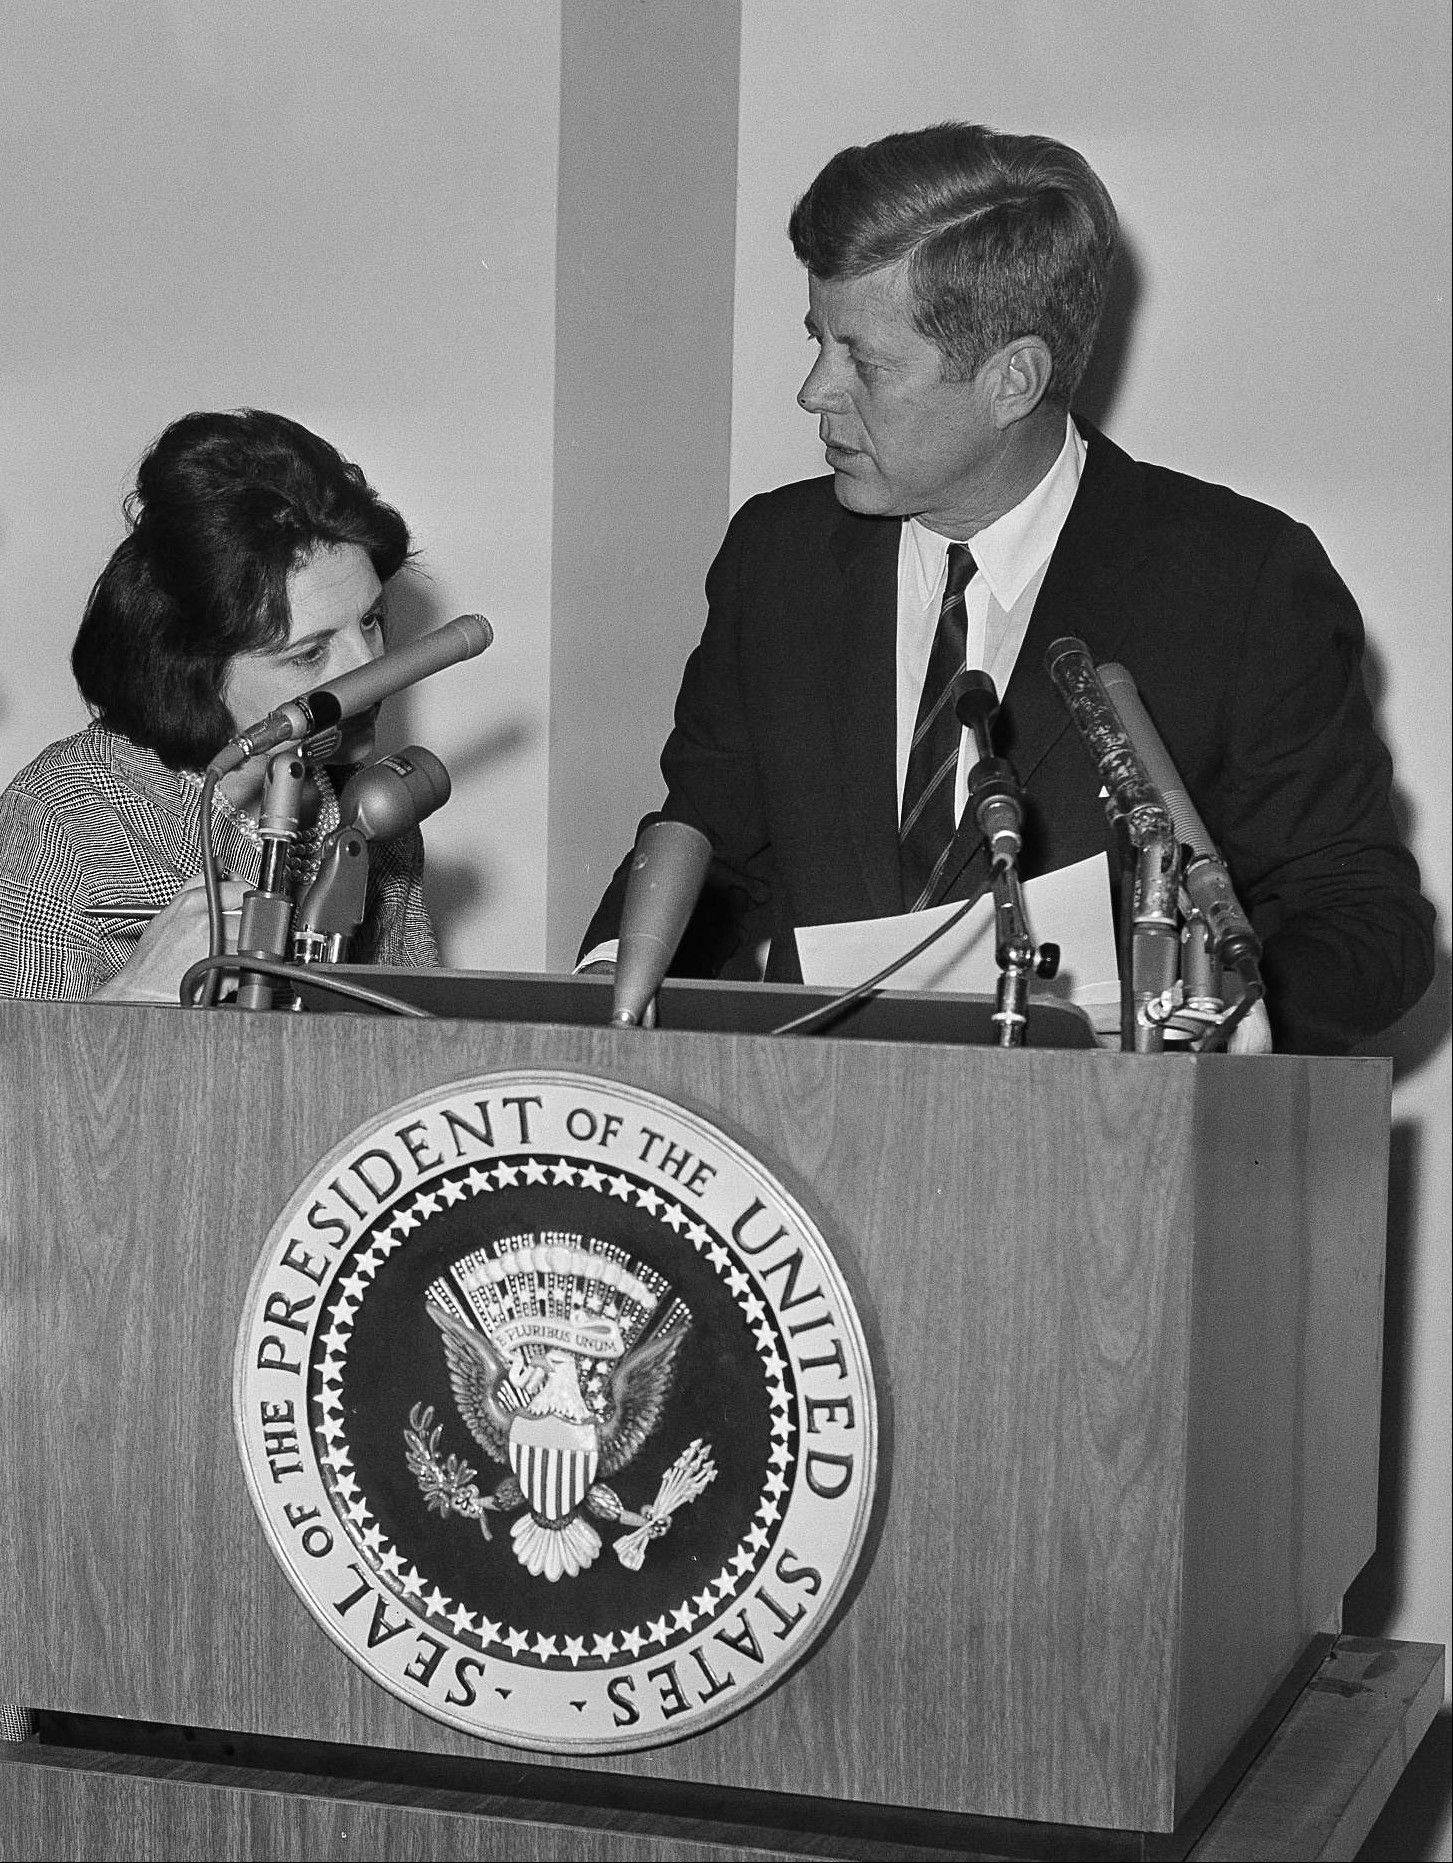 Associated PressIn this May 12, 1963, file photo, reporter Helen Thomas asks President John F. Kennedy for copies of his announcement pledging Federal power to preserve order and lives in Birmingham, Ala., during a news conference at the White House in Washington. Thomas, a pioneer for women in journalism and an irrepressible White House correspondent, has died Saturday, July 20. She was 92.